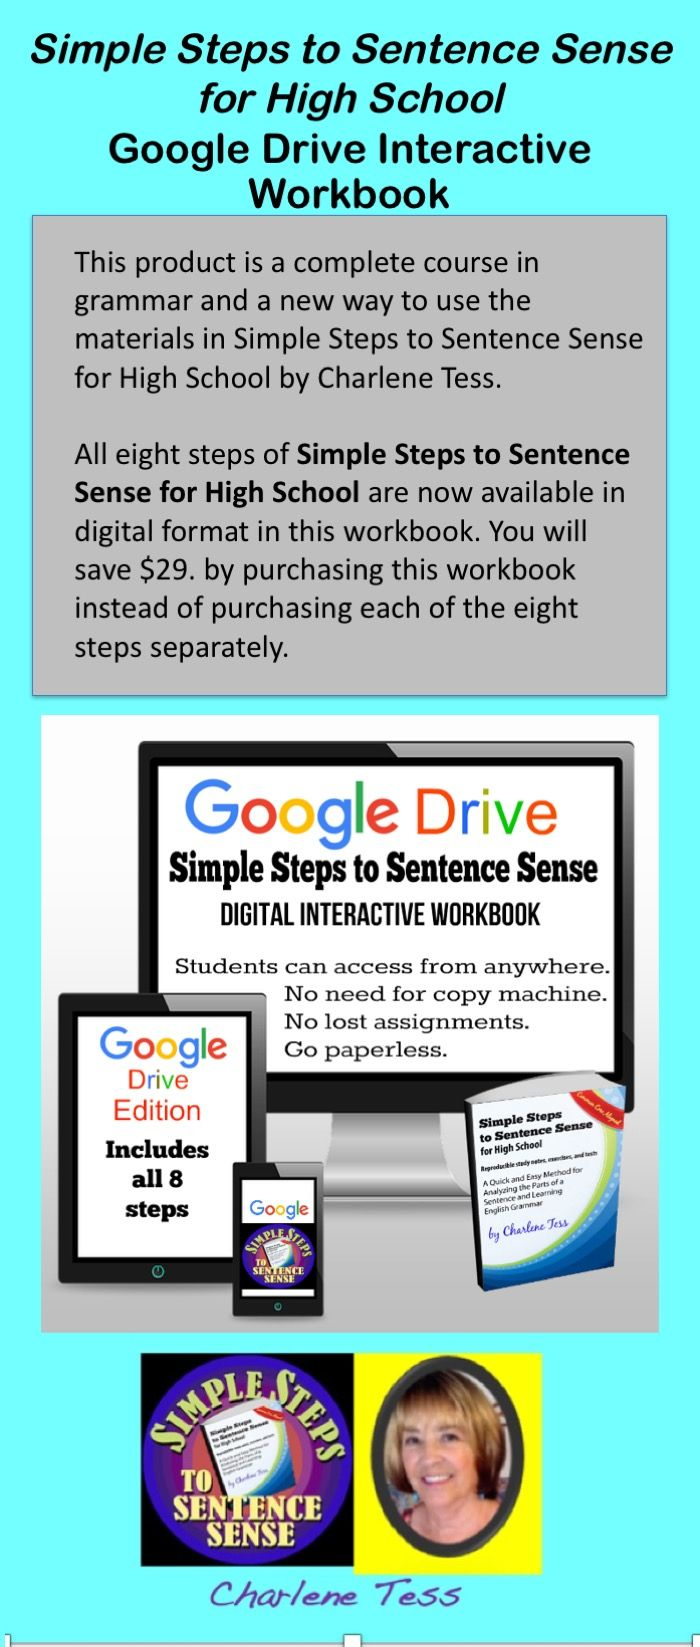 Your students can go #paperless and complete this digital activity in #googledrive. #tptdigital Great for #homeschool. #homeschoolcurriculum